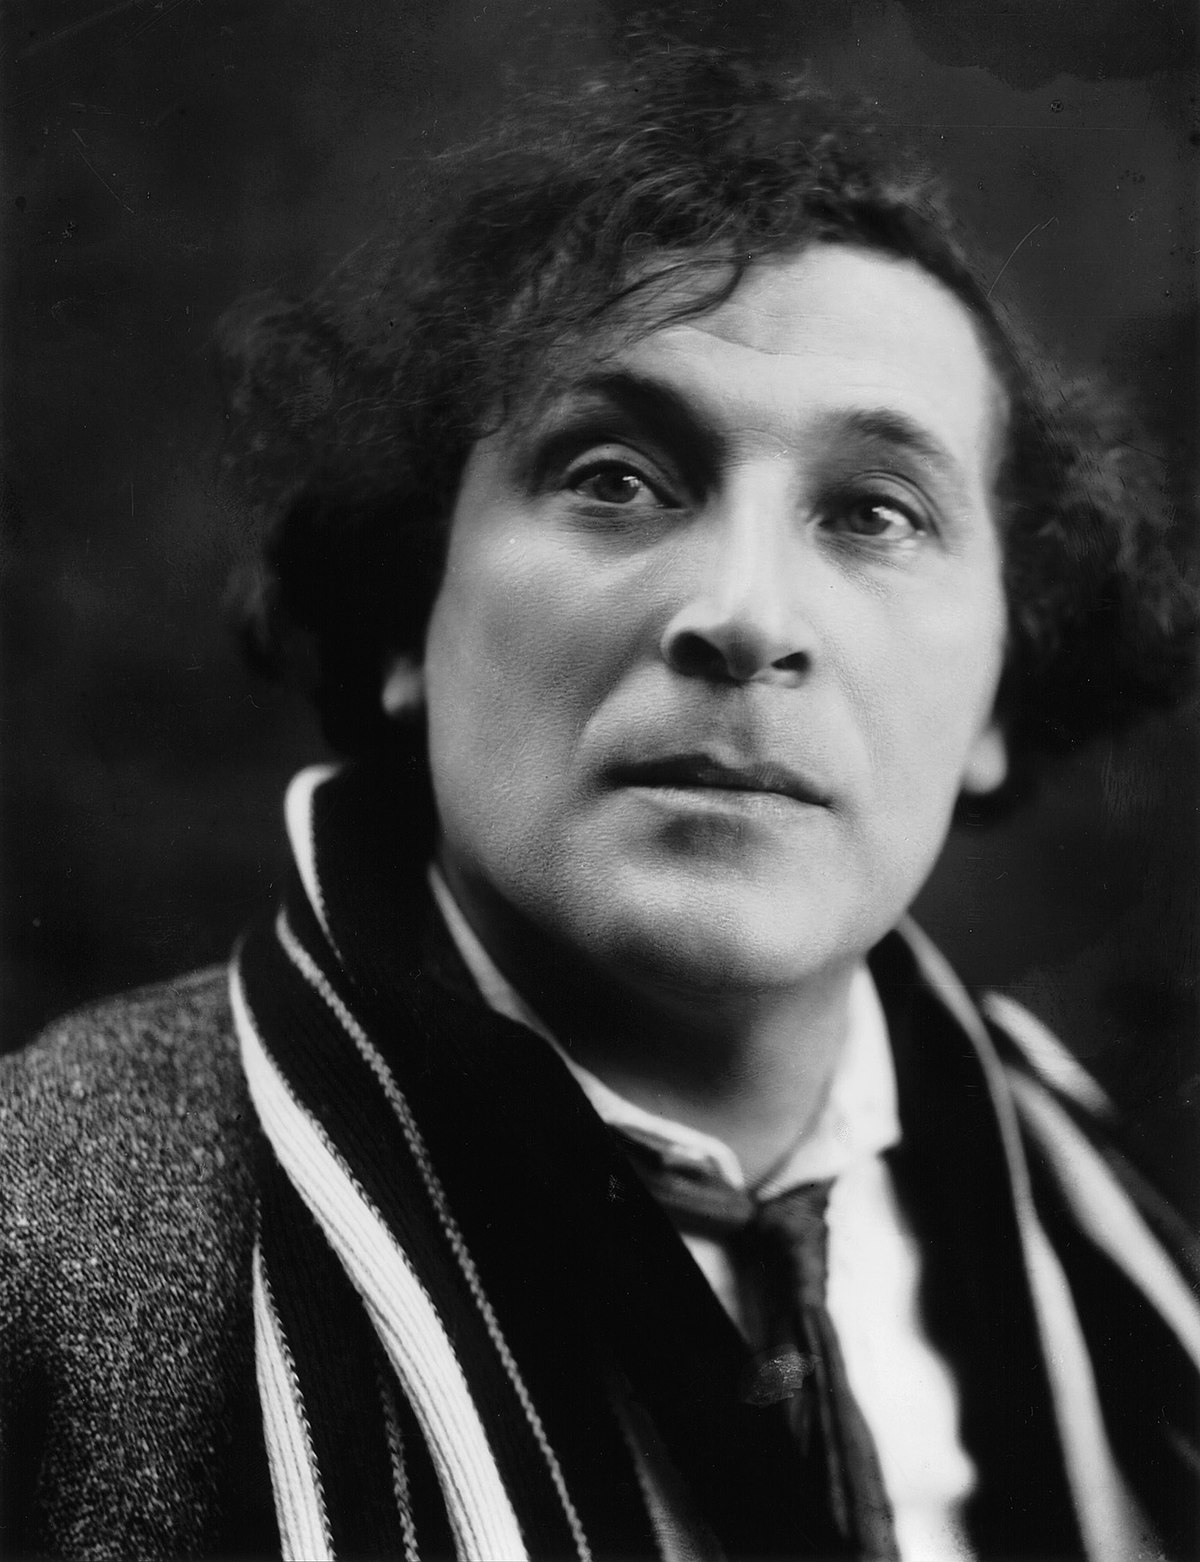 marc chagall happy birthday : marc chagall 339 :  marc chagall 2019 en 2020/2021